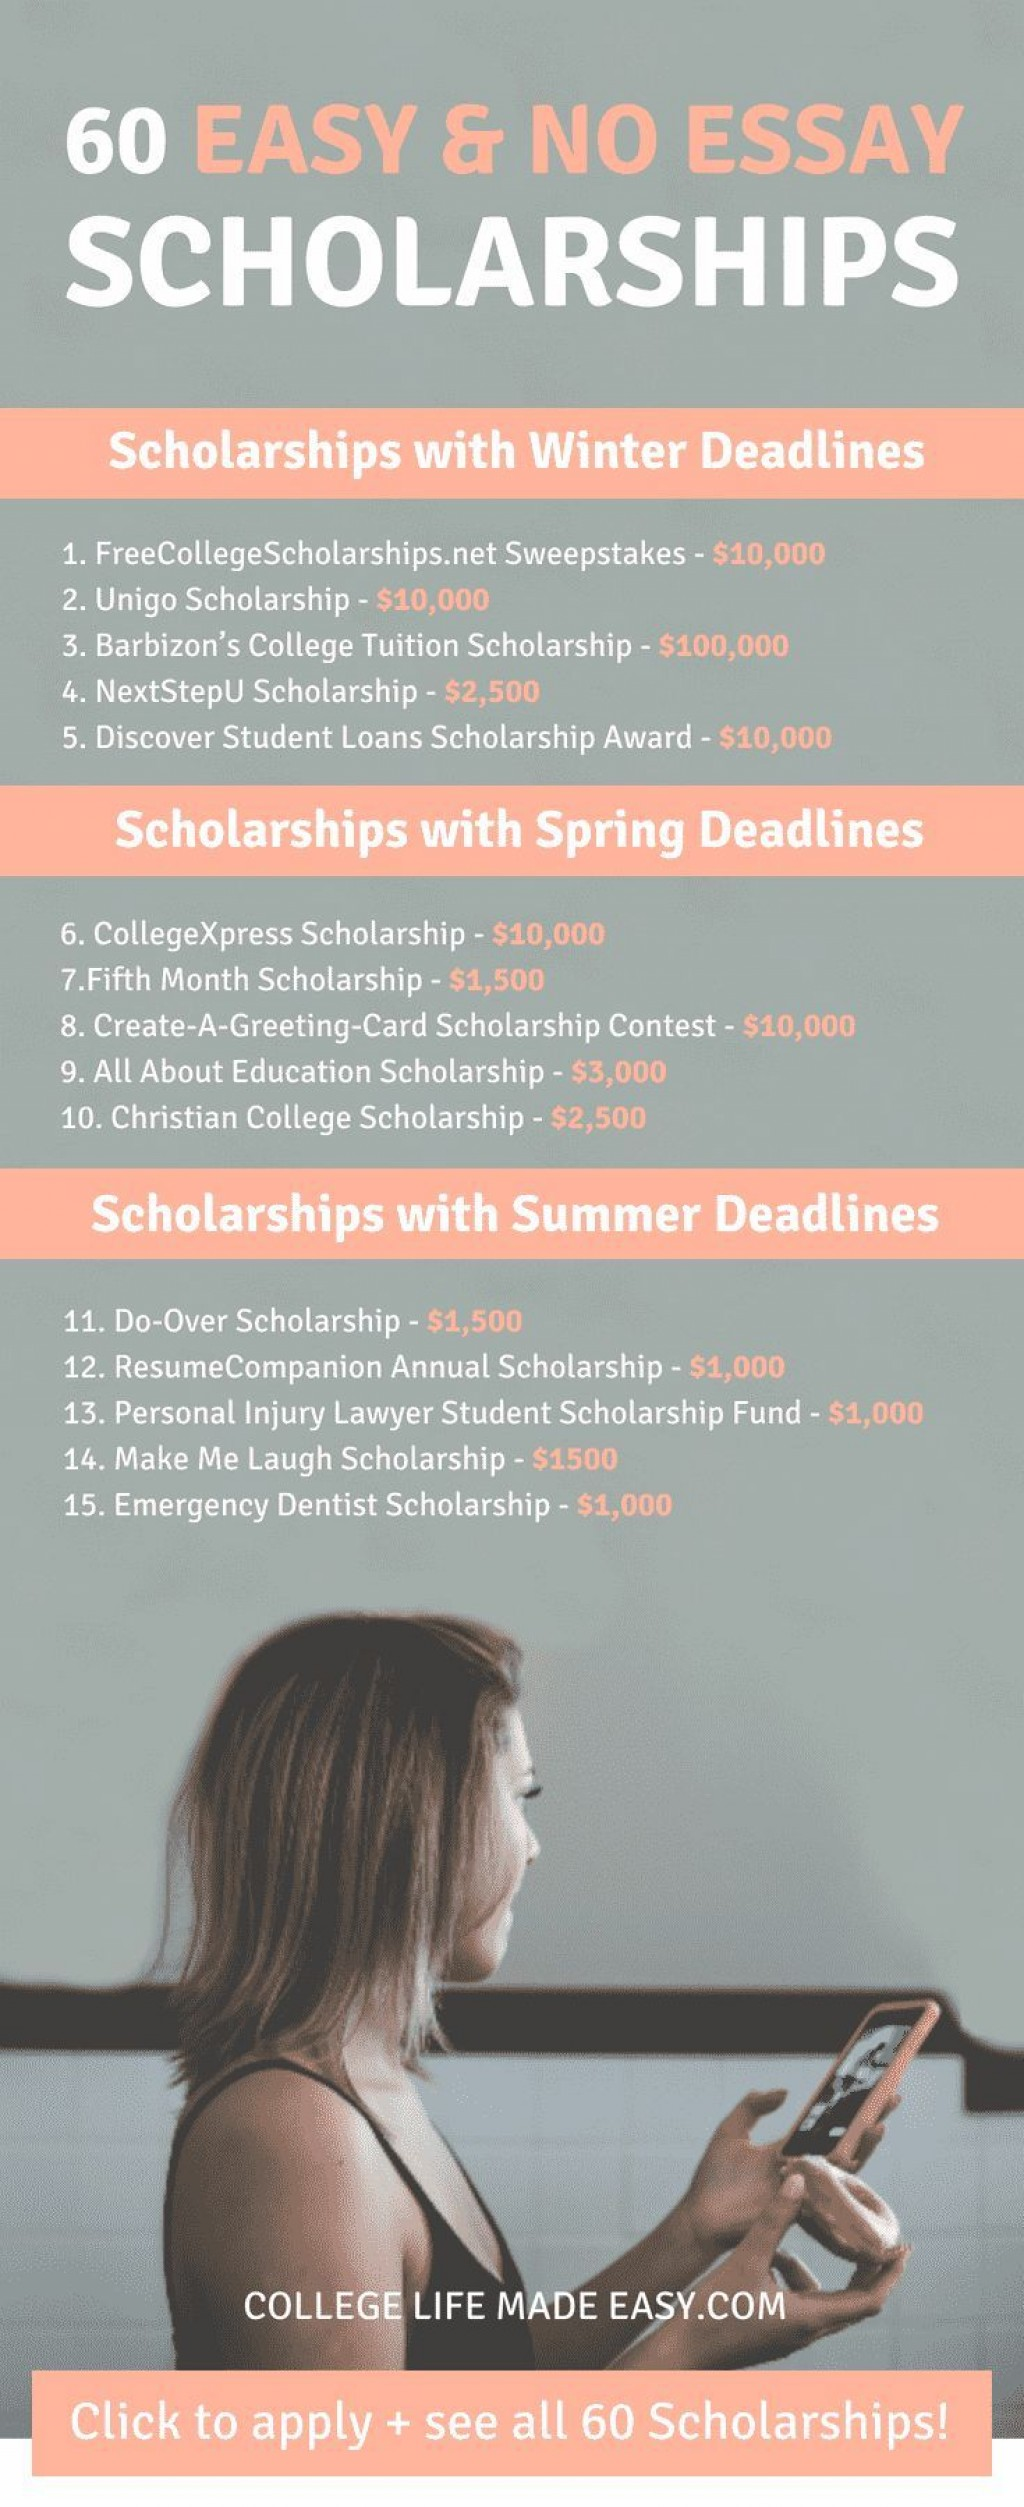 006 No Essay Scholarship Wondrous Scholarships 2019 Graduates For High School Seniors Applications Large